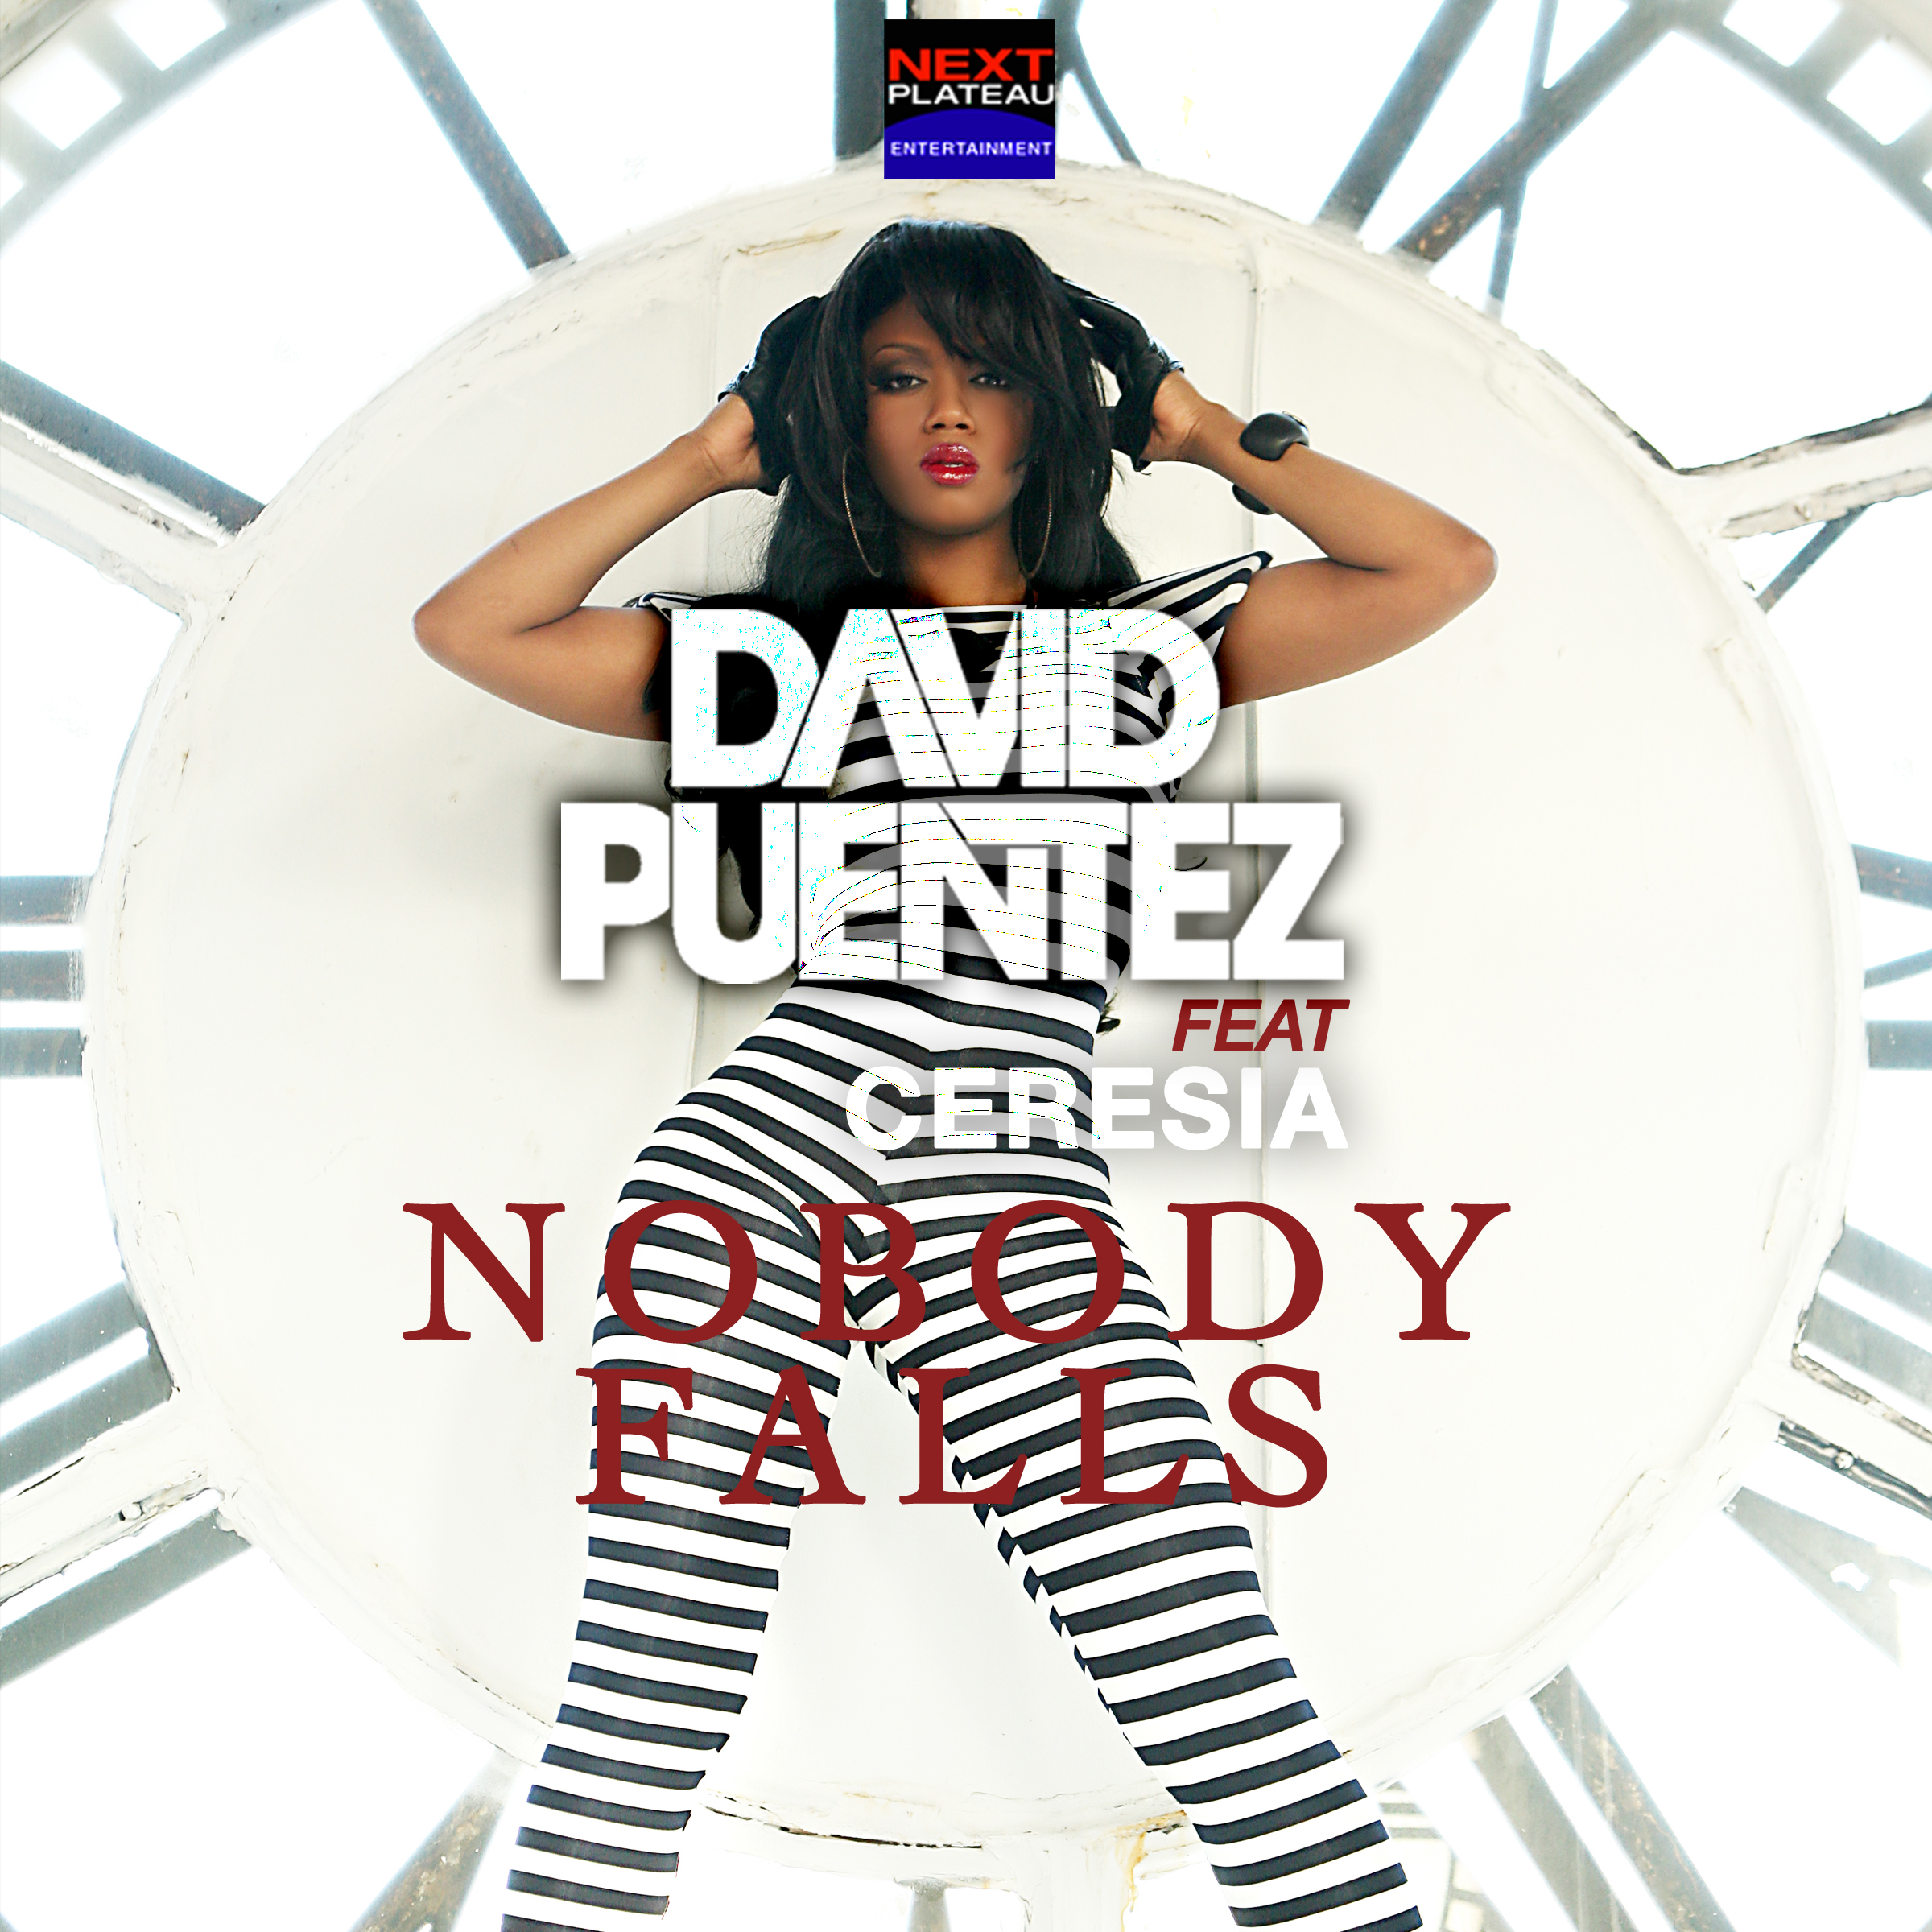 DAVID PUENTEZ FEAT. CERESIA - NOBODY FALLS